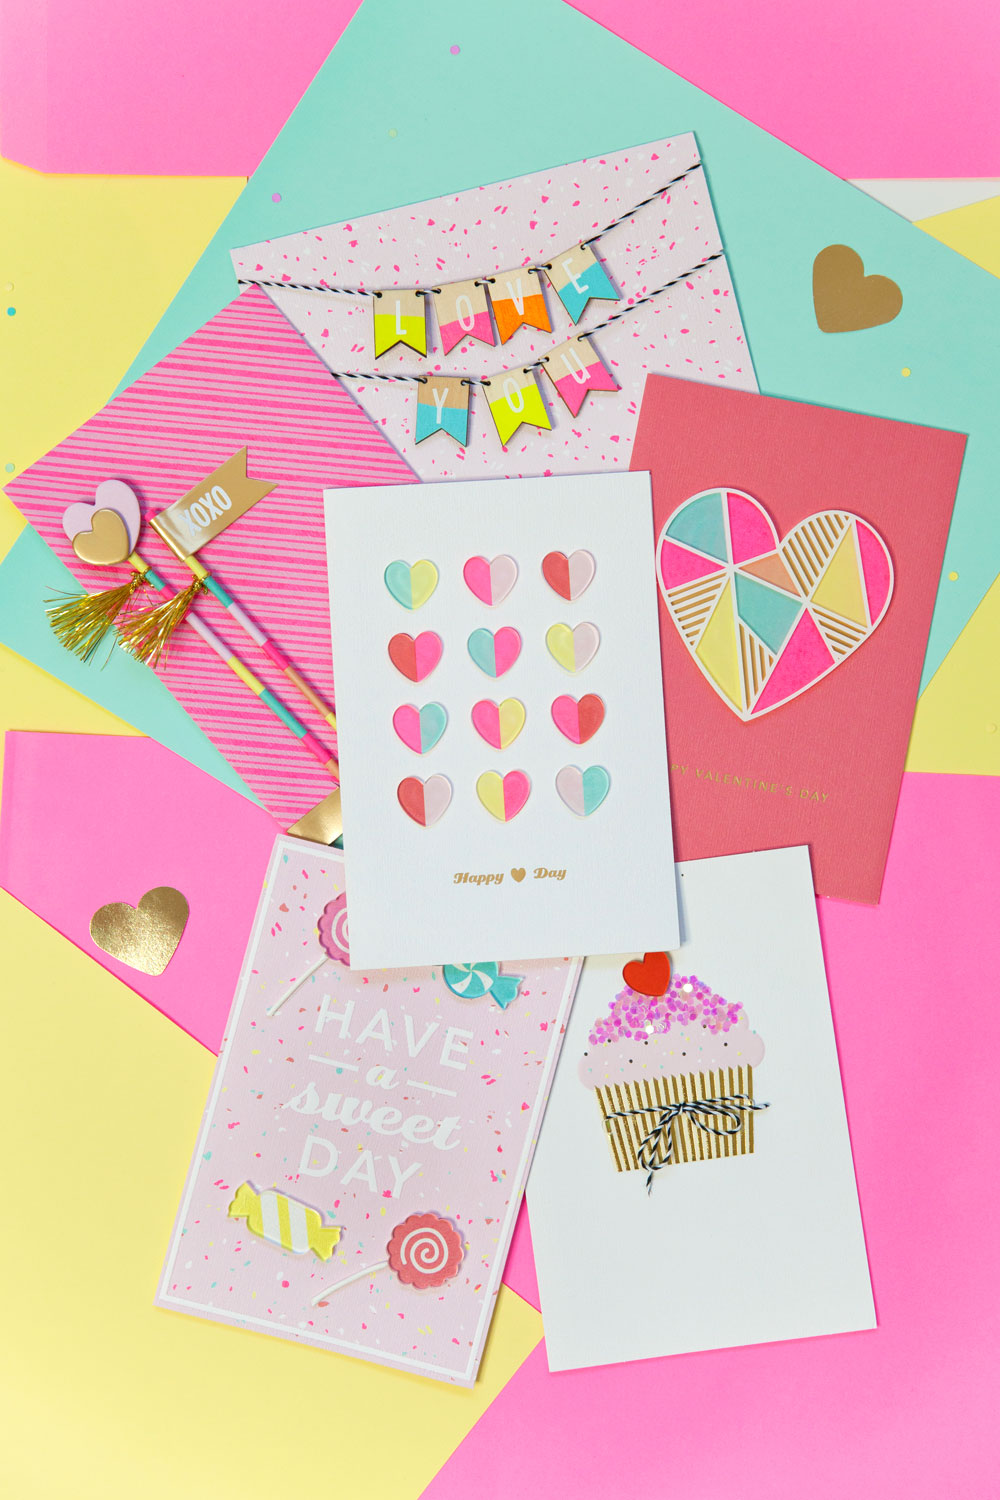 Hallmark-Valentine-Day-Cards-with-Tell-Love-and-Party